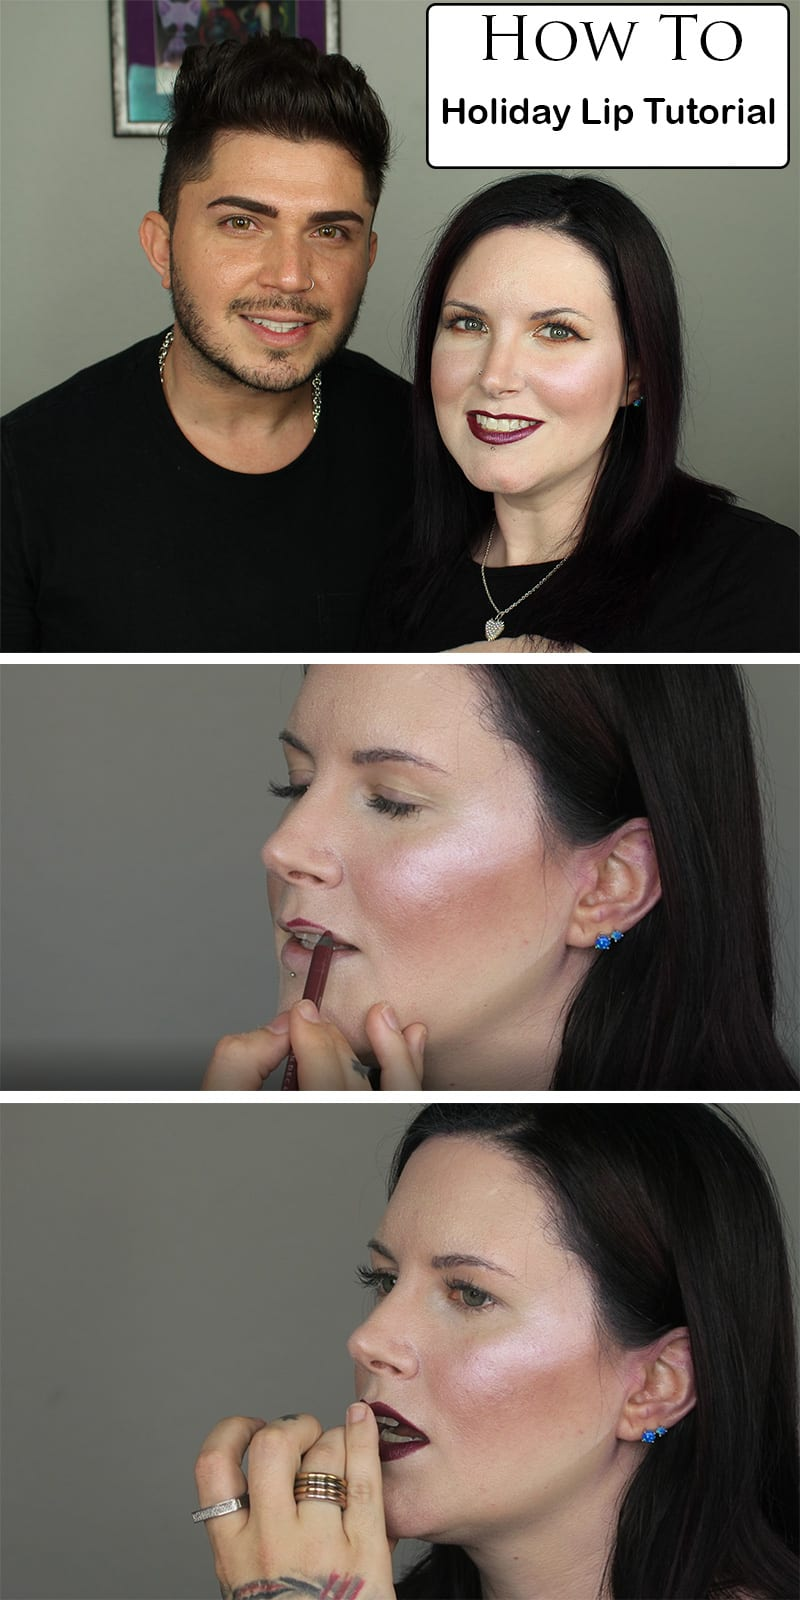 Holiday Lip Tutorial